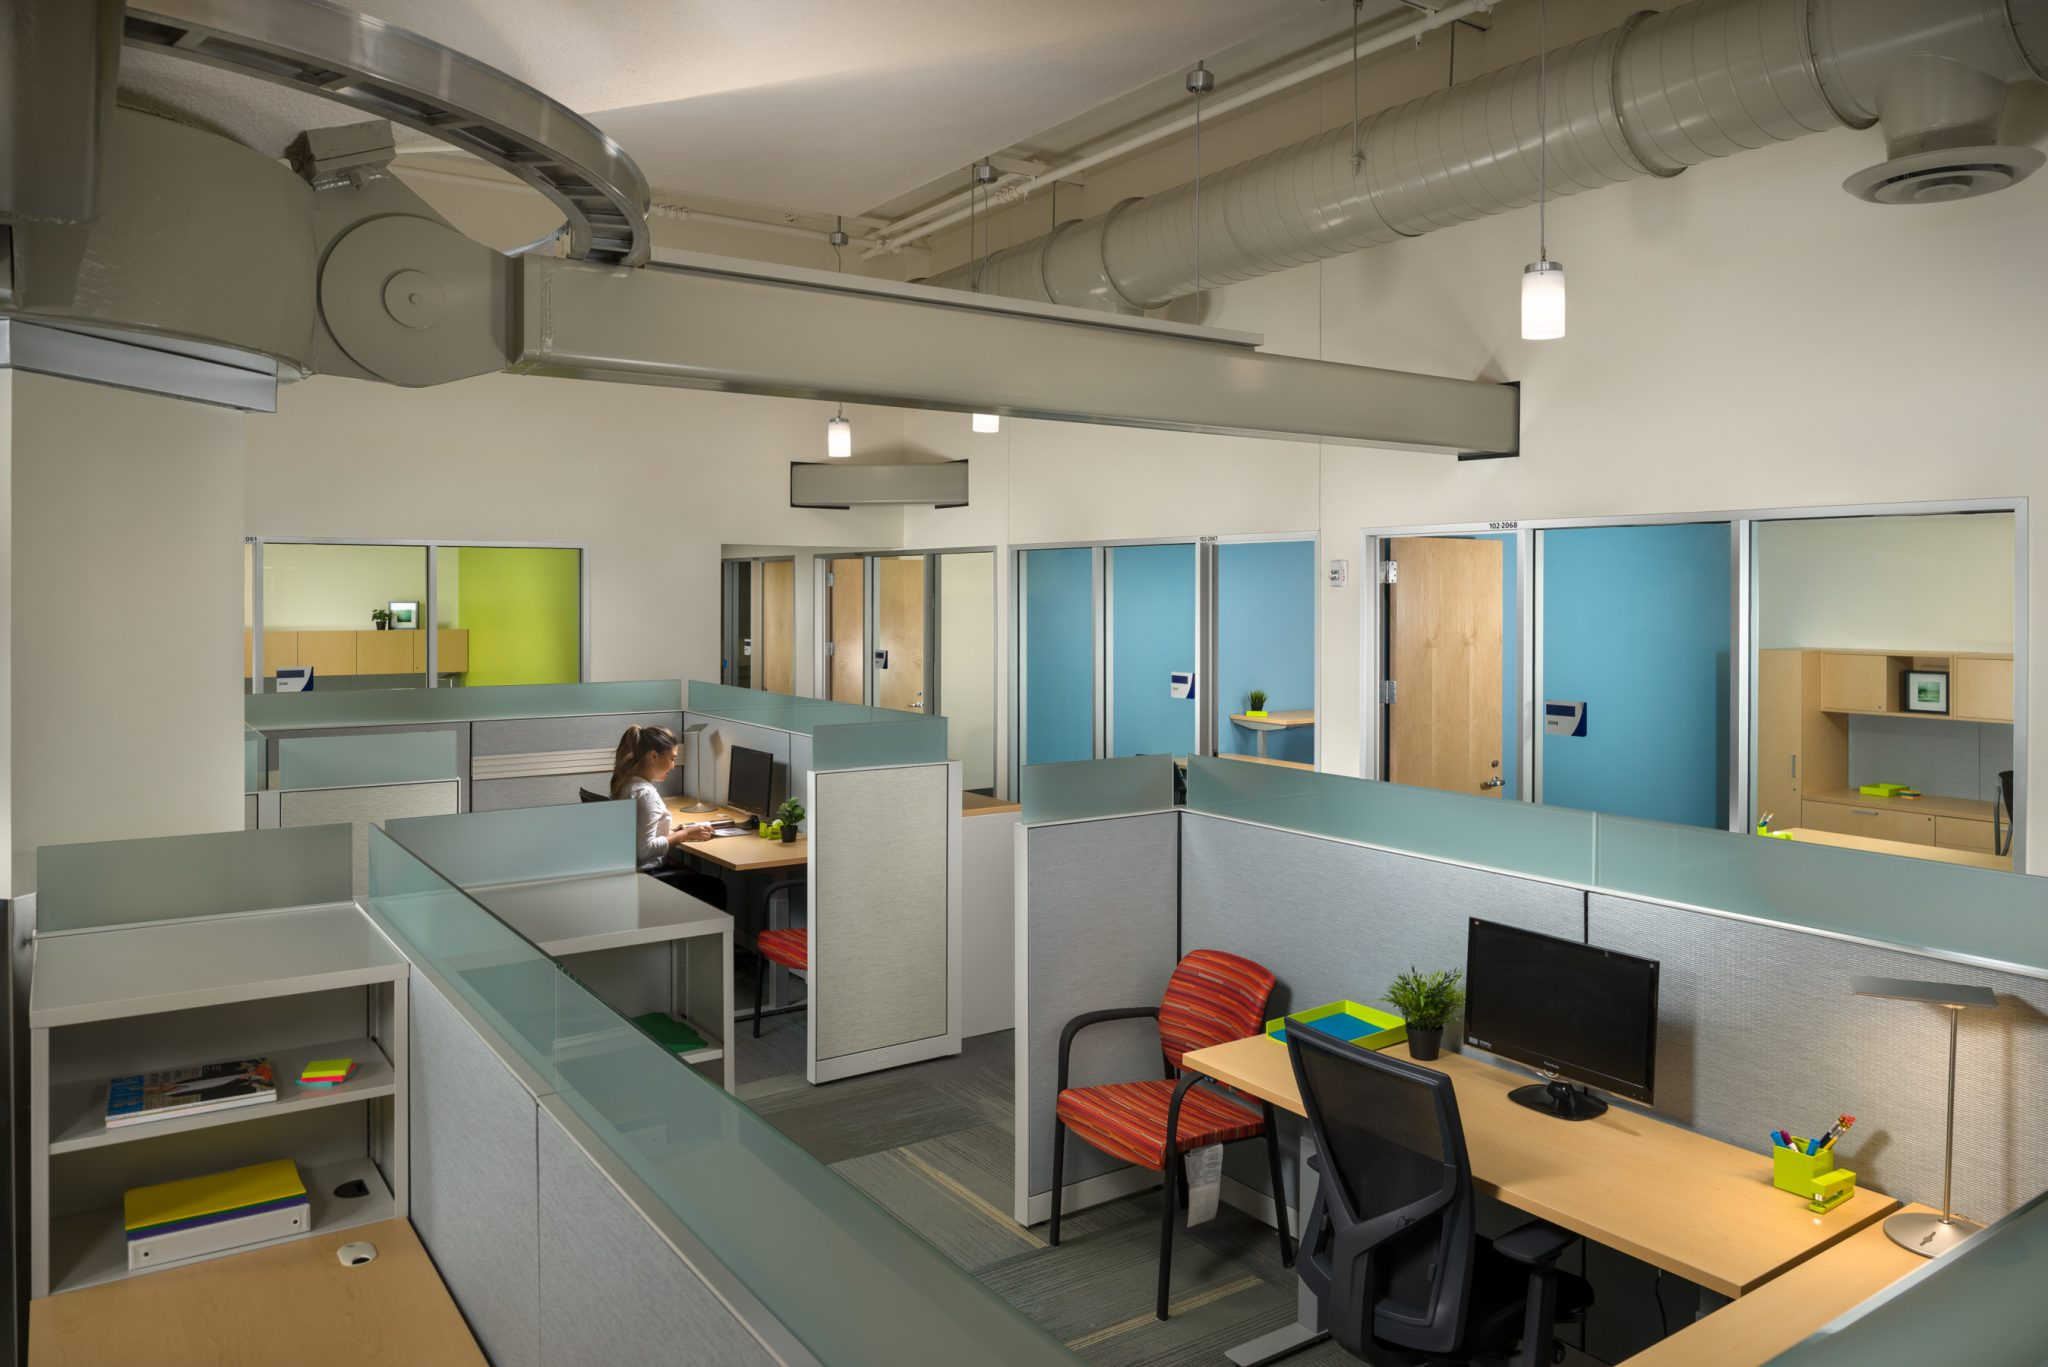 Oak terminal one expansion rehabilitation mwa architects - Oakland community college interior design ...